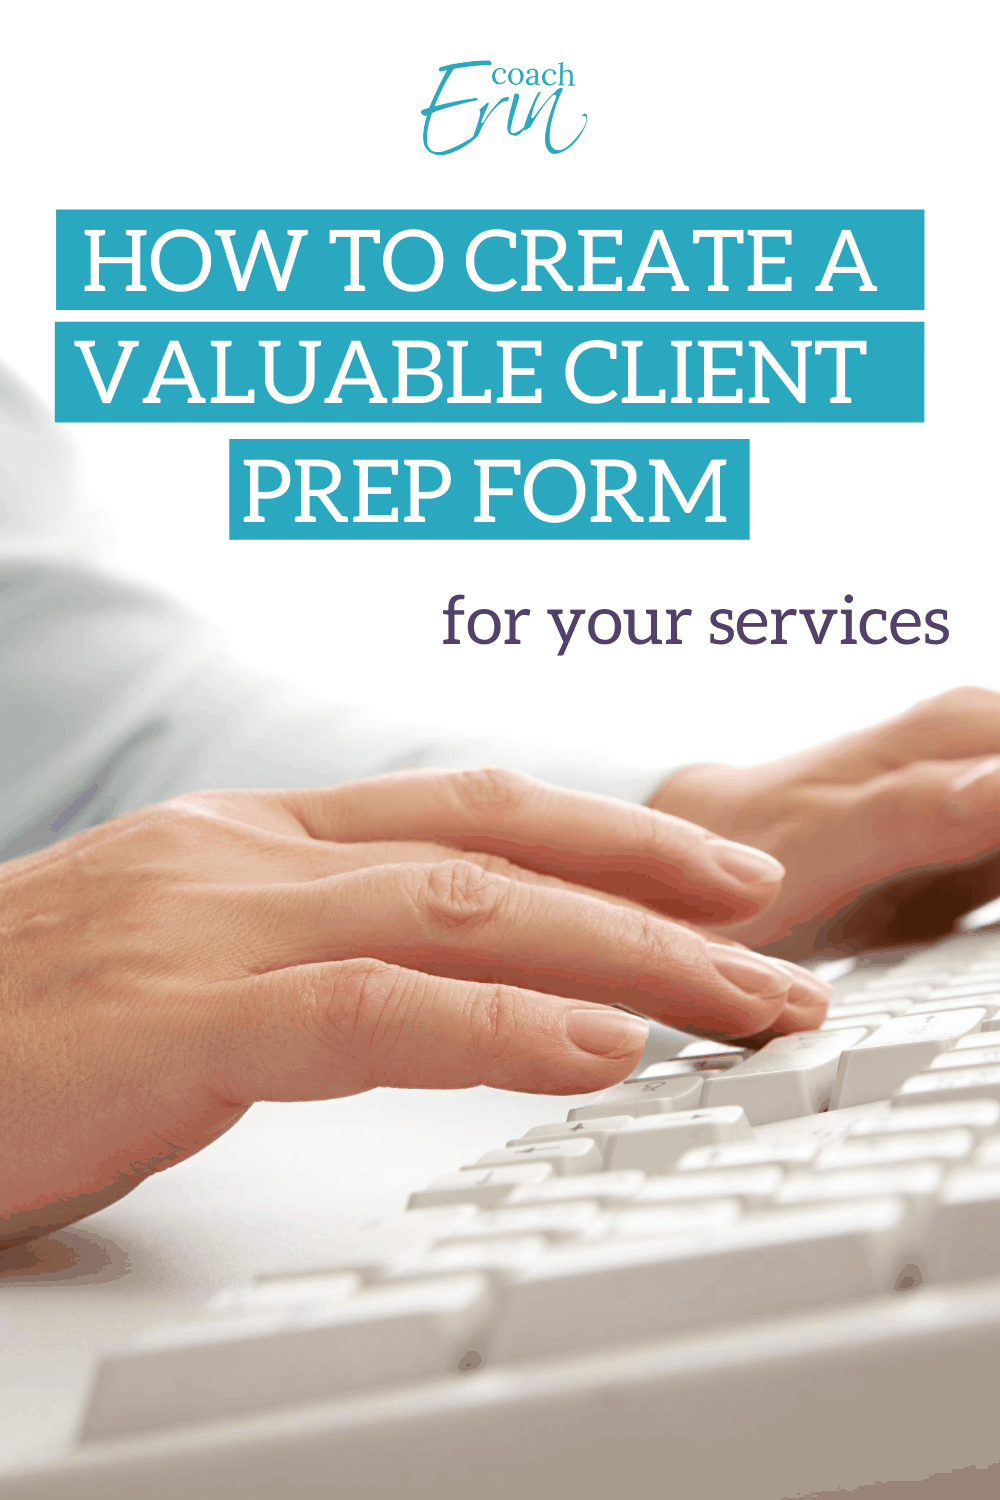 How To Create A Valuable Client Prep Form